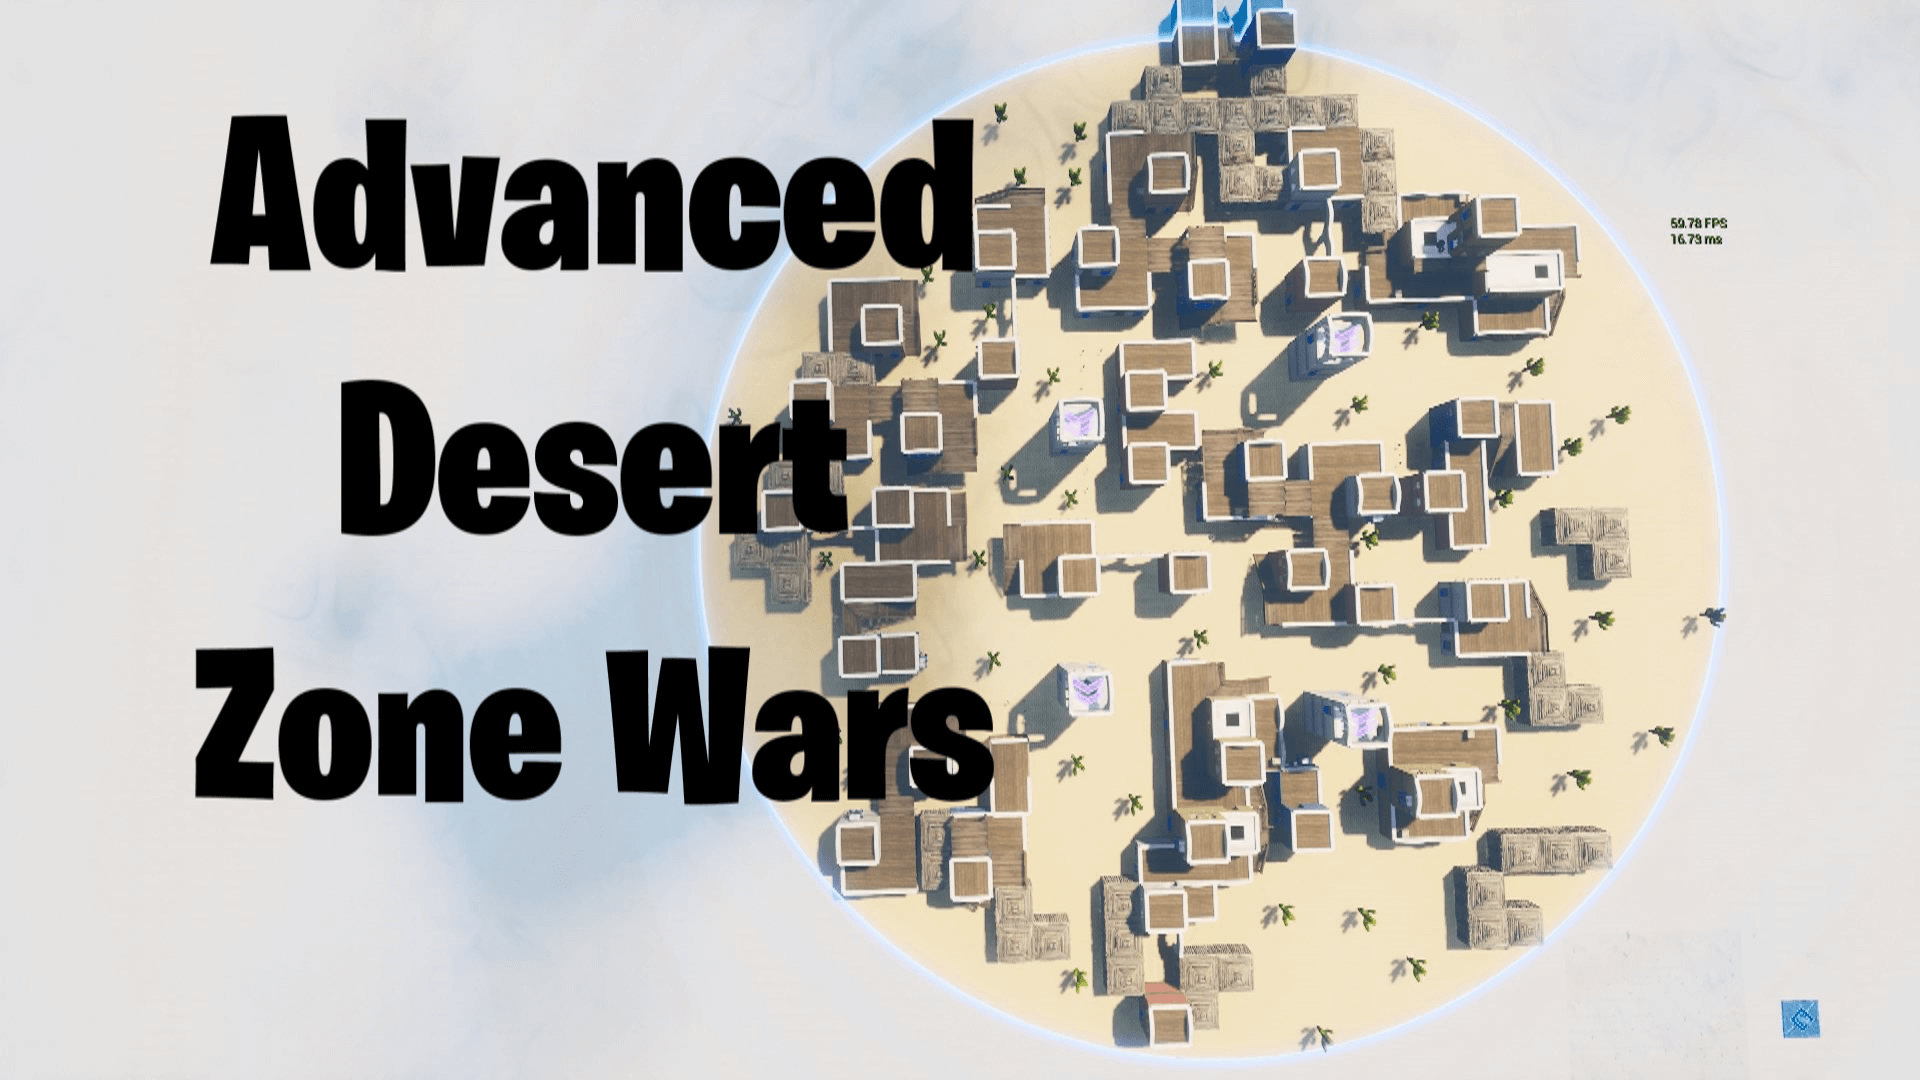 ADVANCED DESERT ZONE WARS (V1.0)